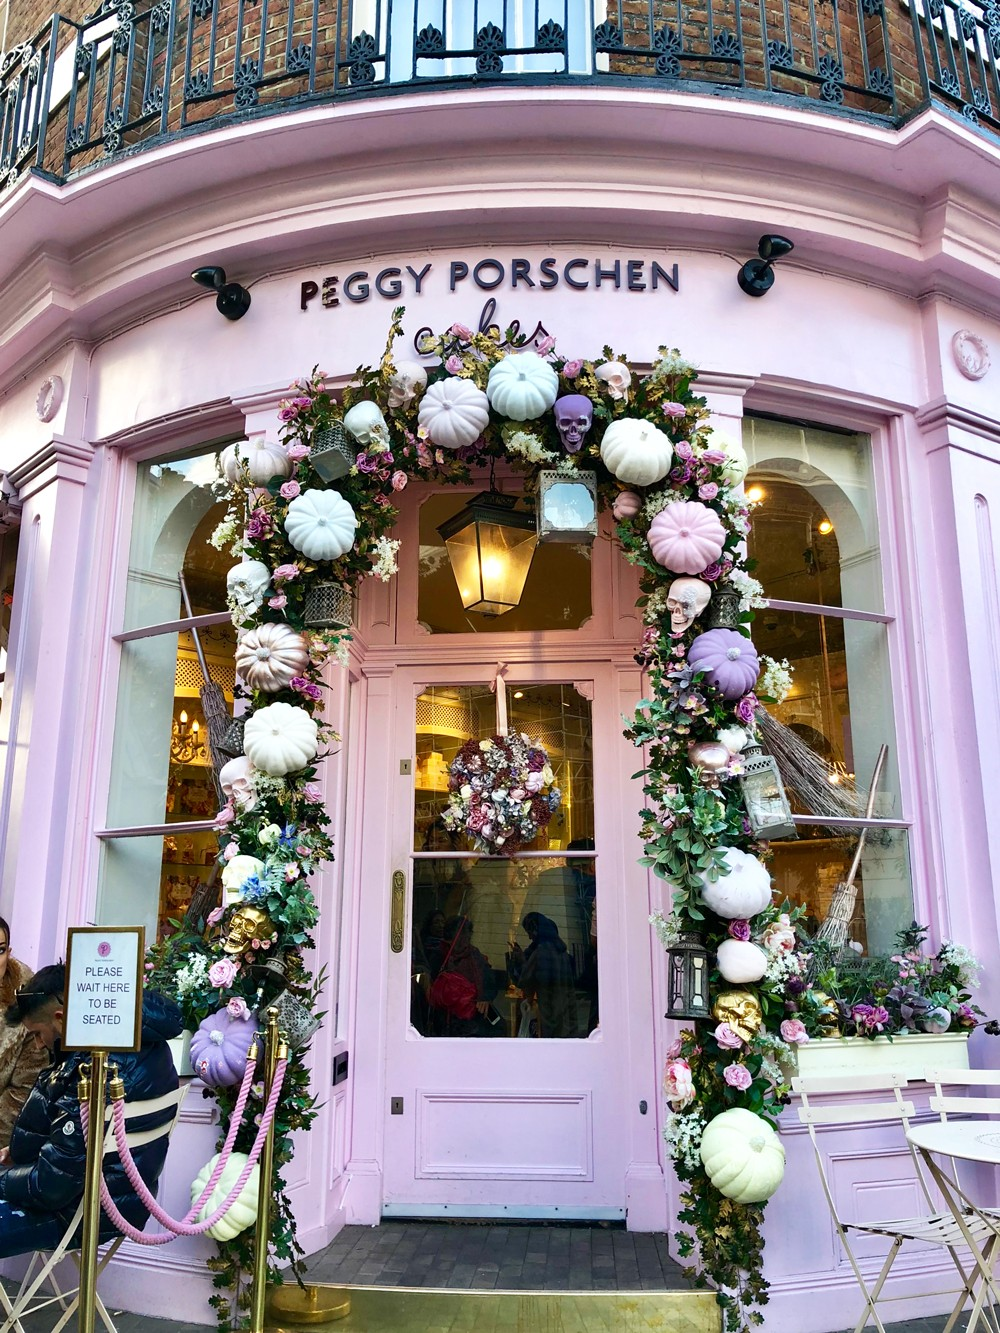 Couples Guide to London - Peggy Porschen Bakery Cupcakes